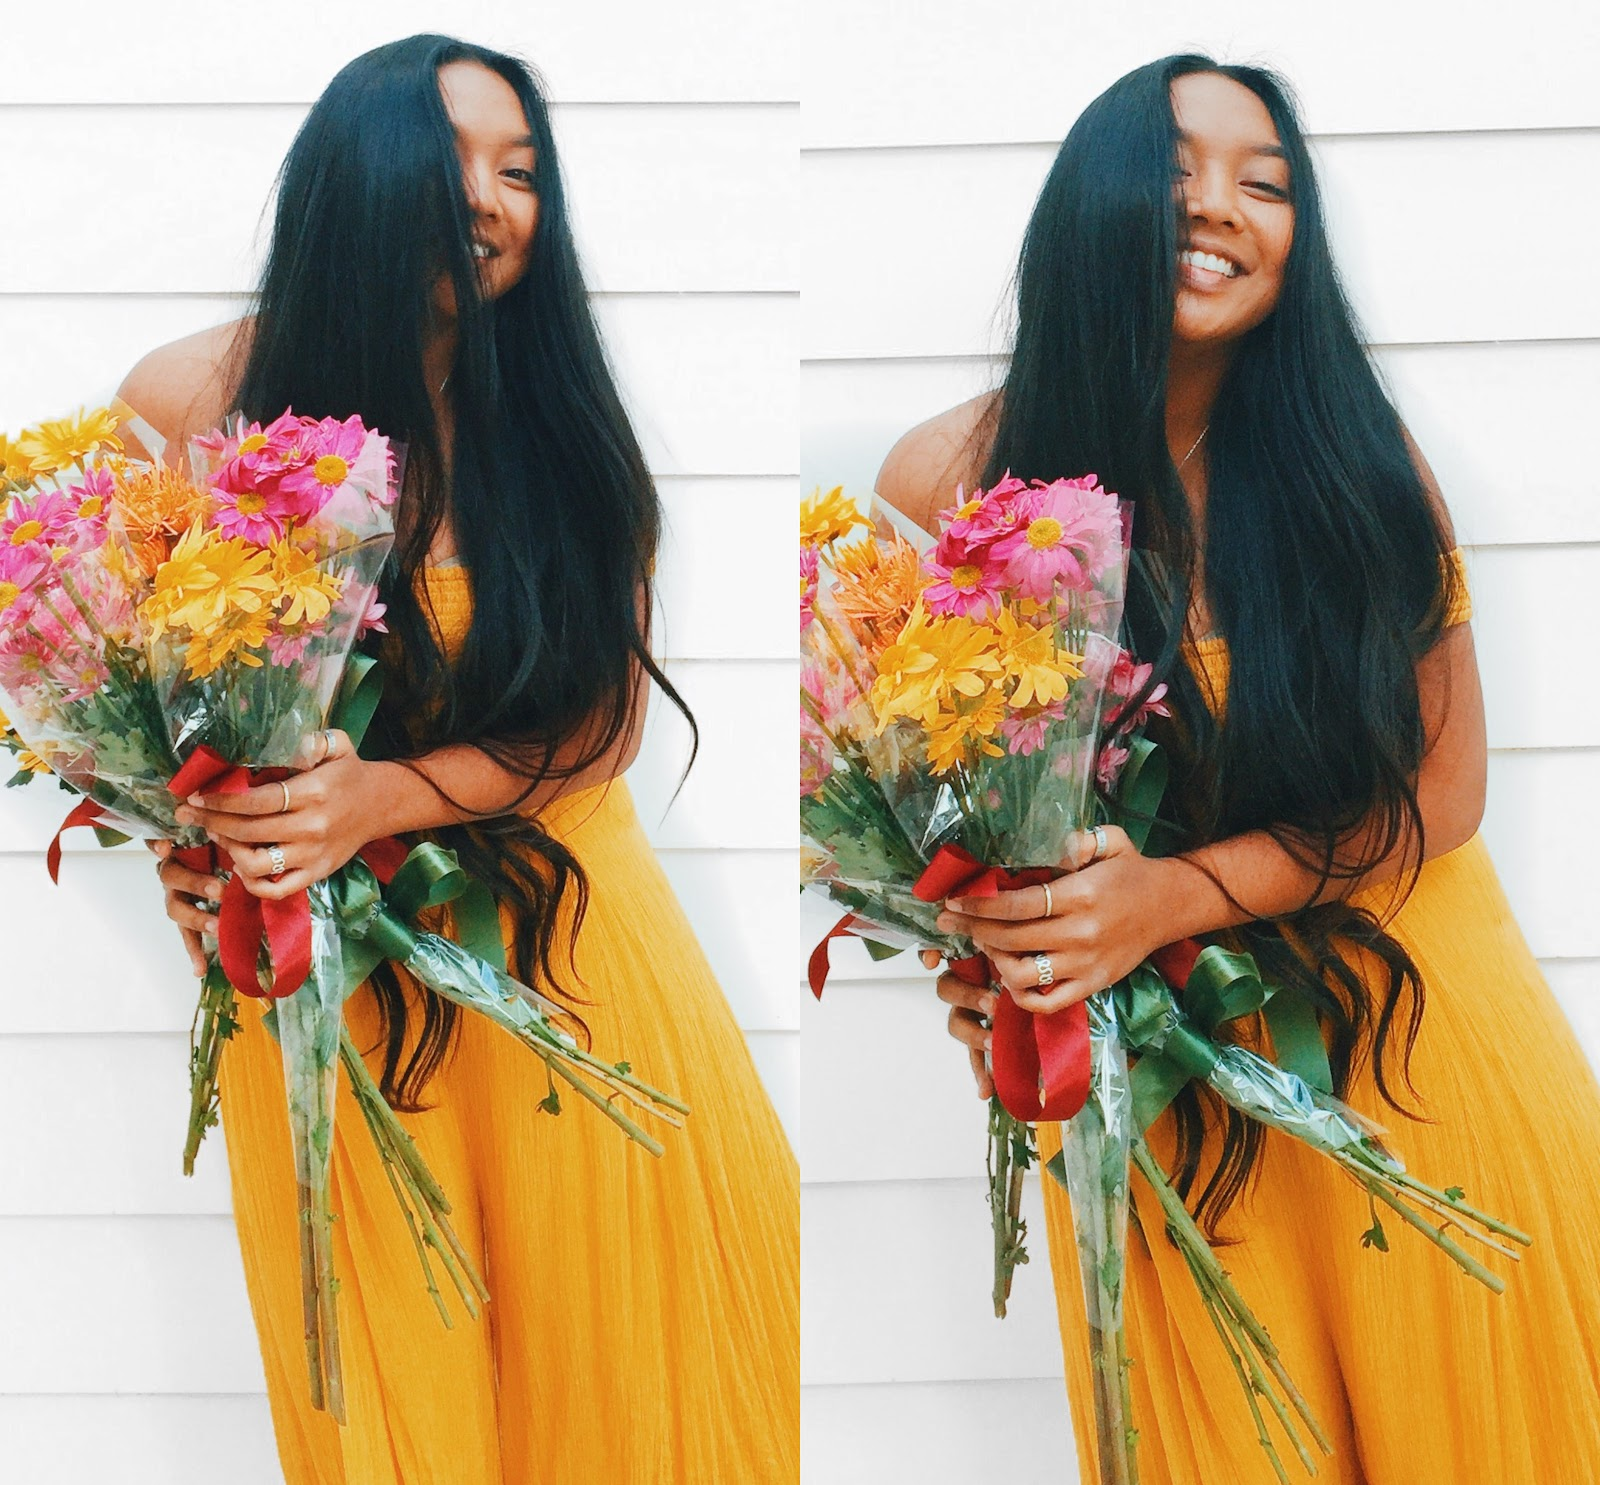 Aubrey with long hair and a bouquet of beautiful flowers